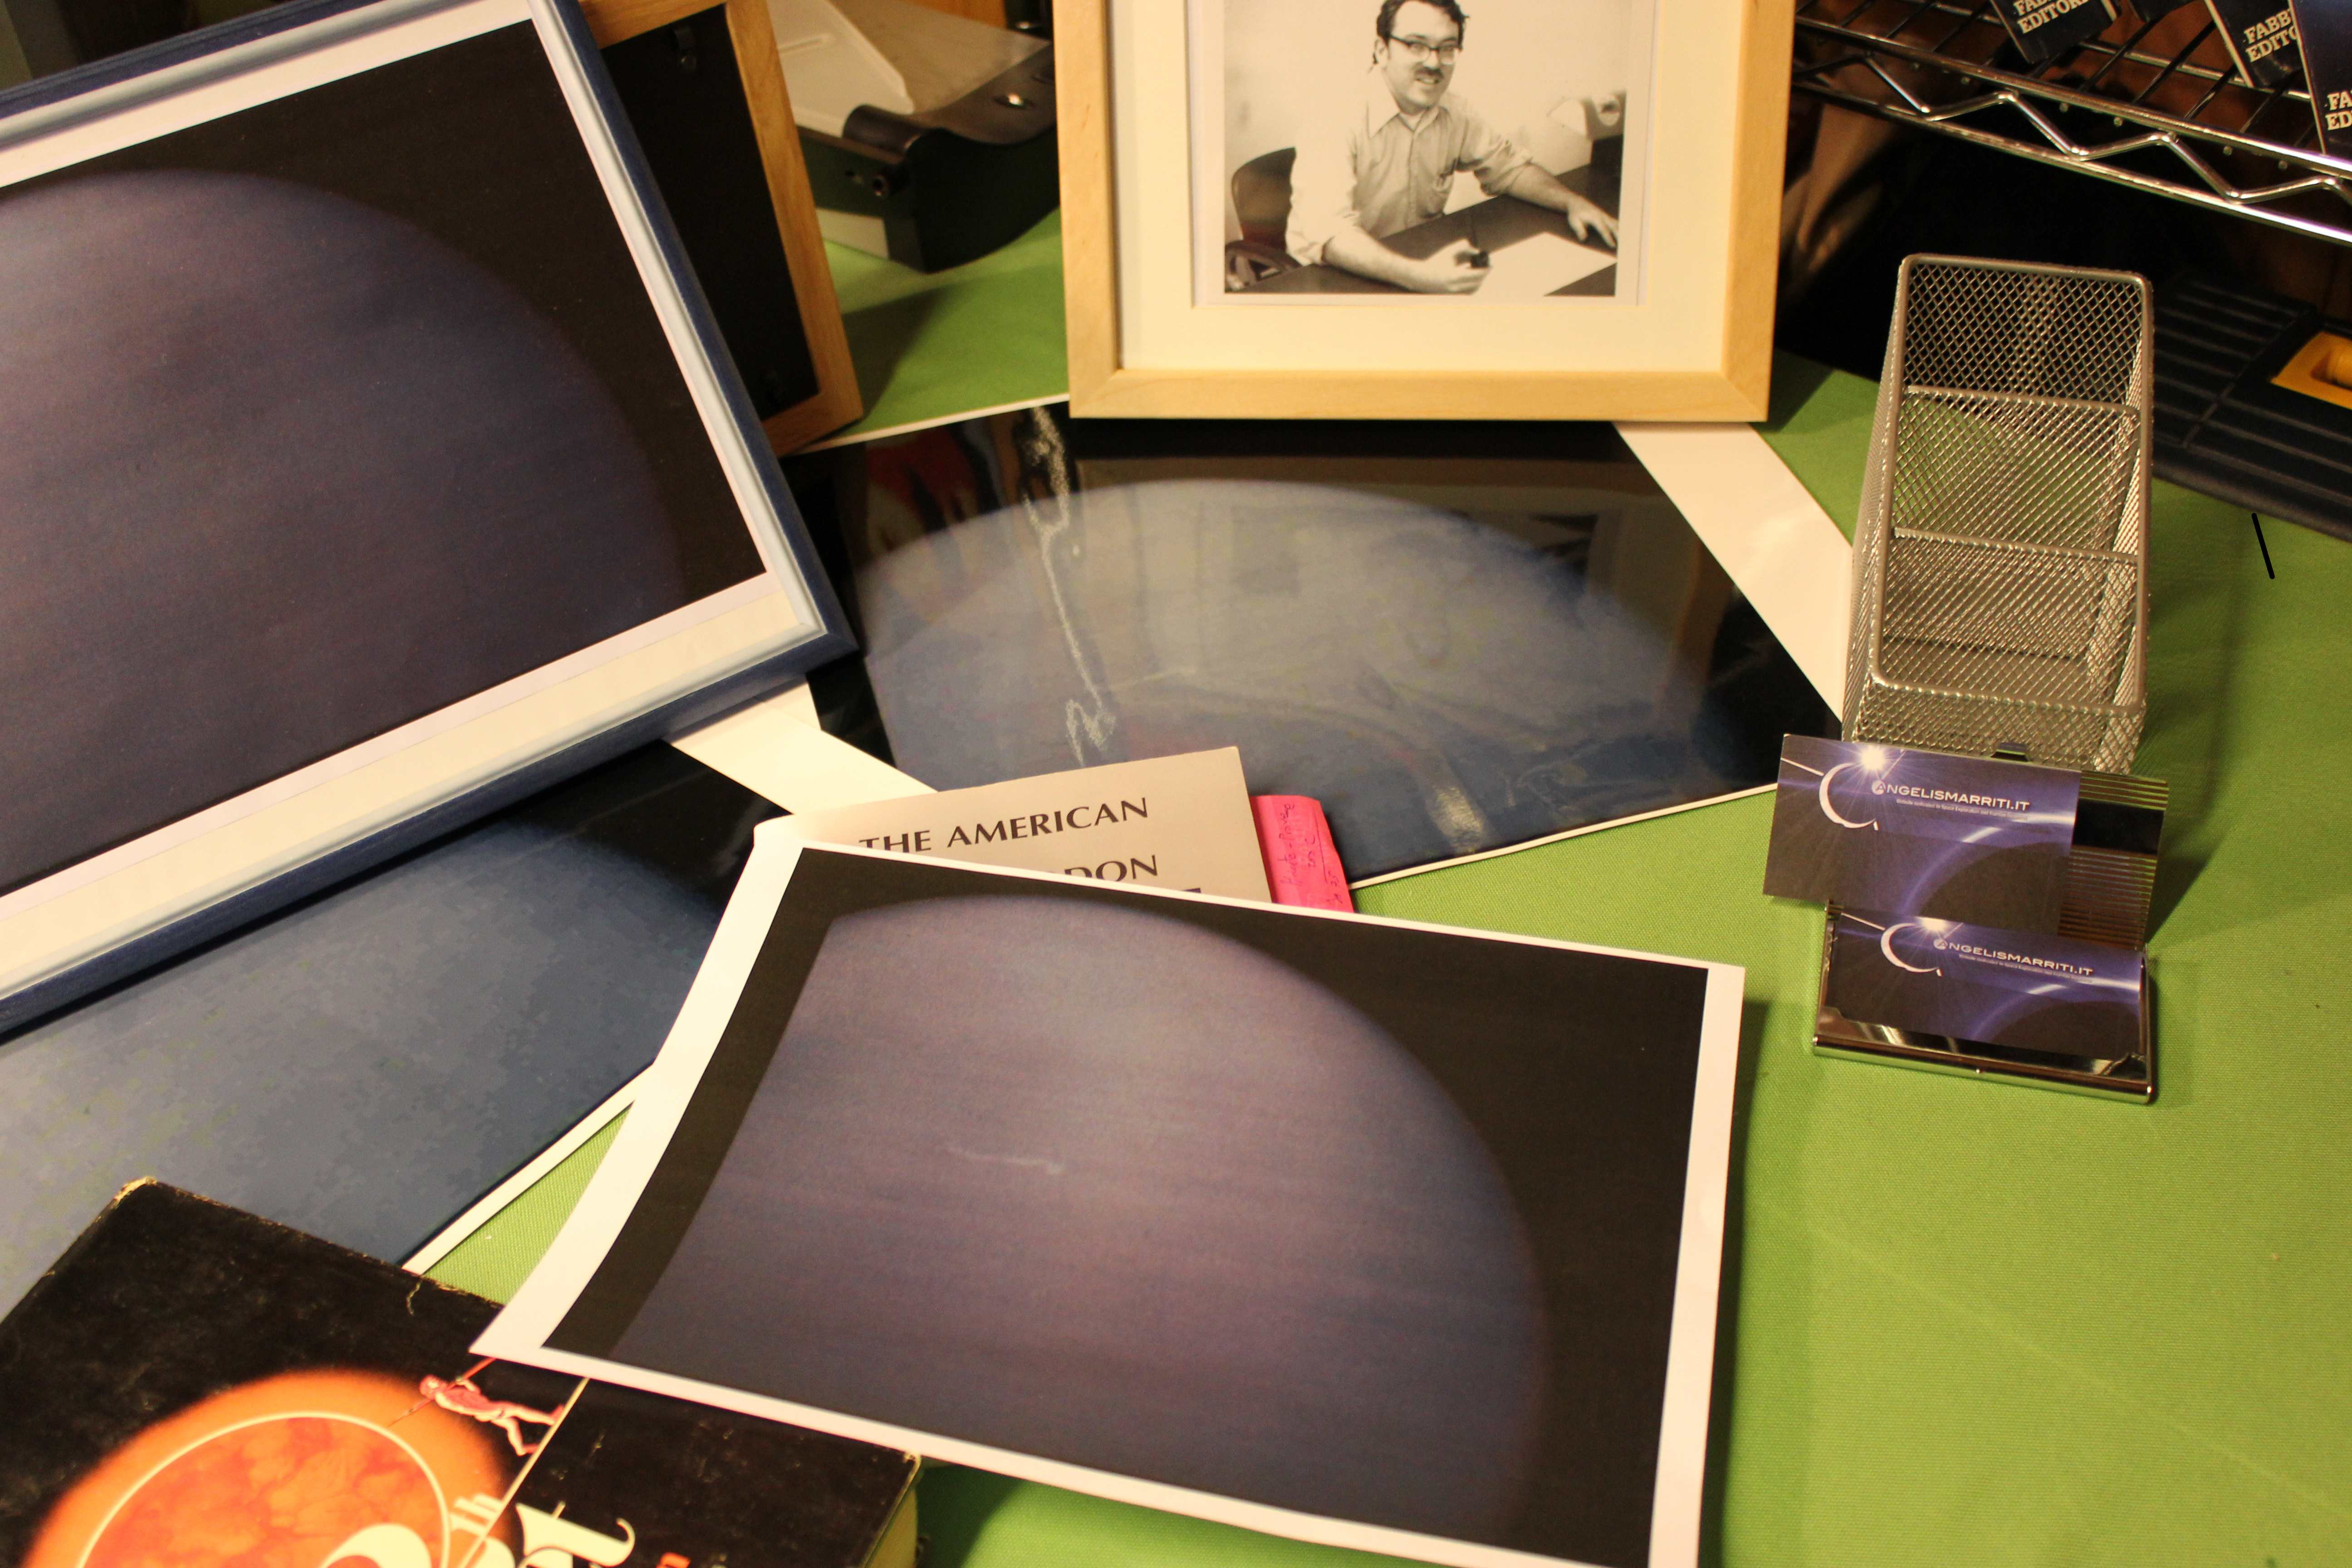 Photographic prints of a couple of images sent to Luca Scantamburlo in the year 2006 by an European insider.They would portray Nibiru, the Tenth Planet, photographed by the space probe Pioneer 10 during a secret fly-by (extended mission). Credit: Photo by Luca Scantamburlo, (C) 2013